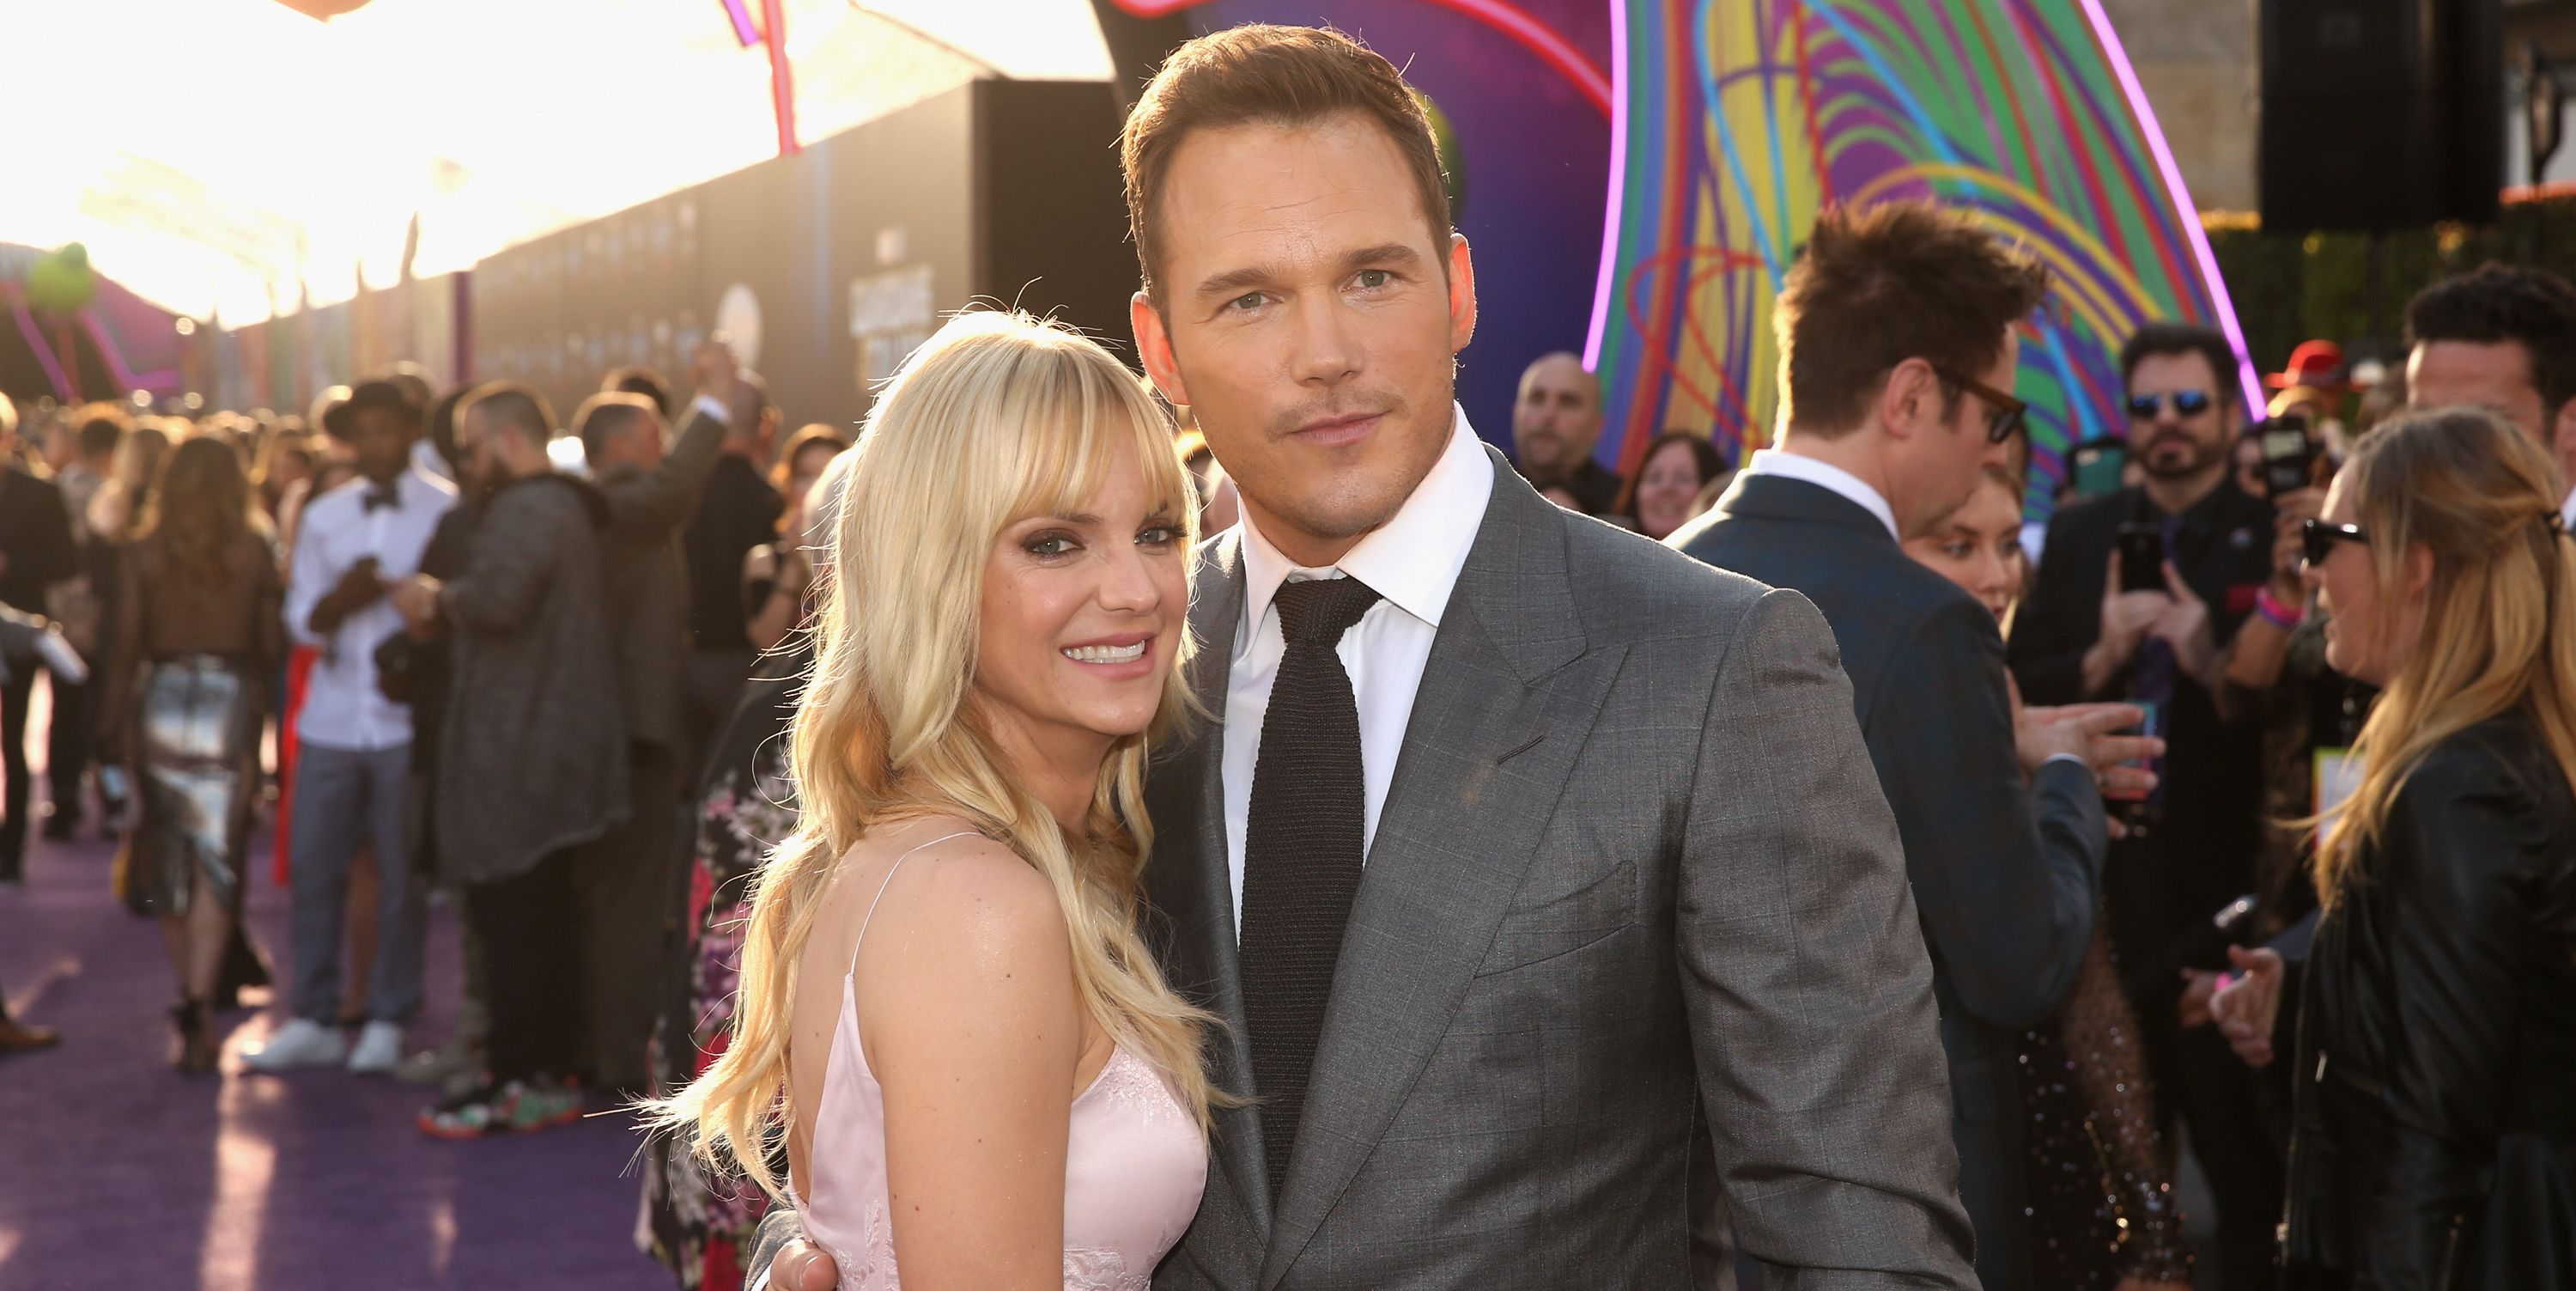 Chris Pratt Told Anna Faris About His Engagement In A Super Casual Way